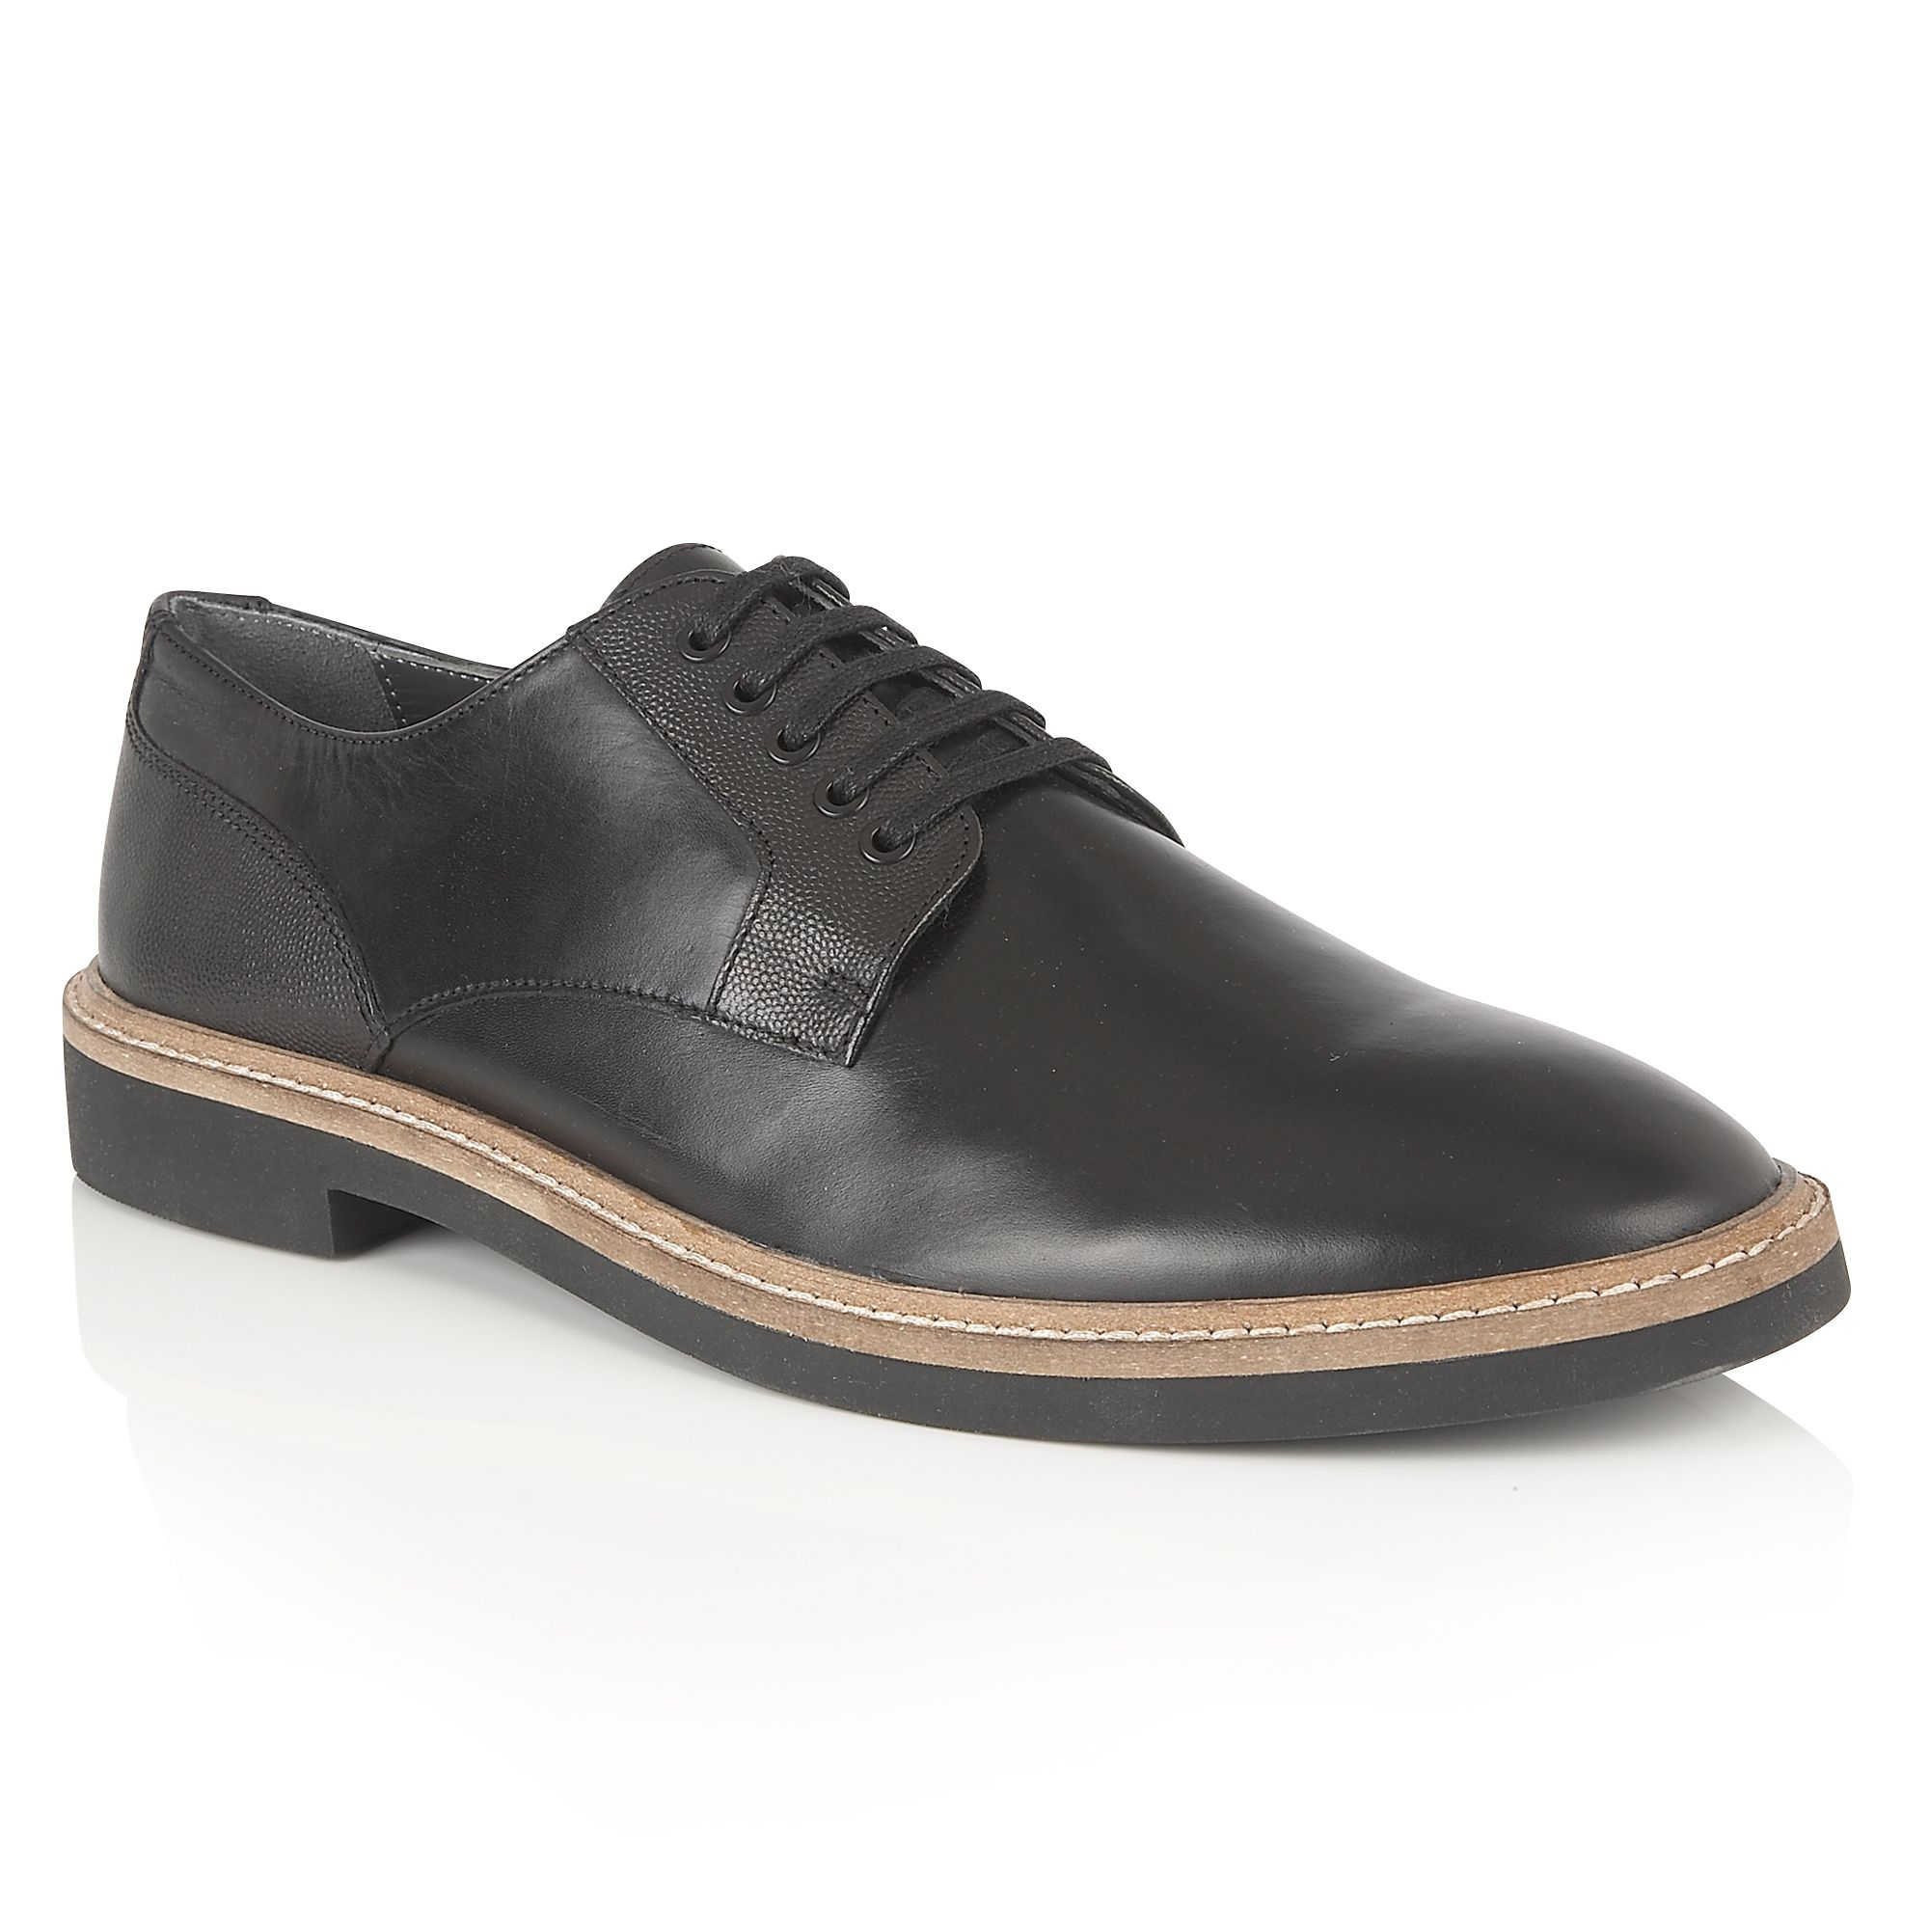 Frank Wright Frank Wright Banff Mens Shoes, Black